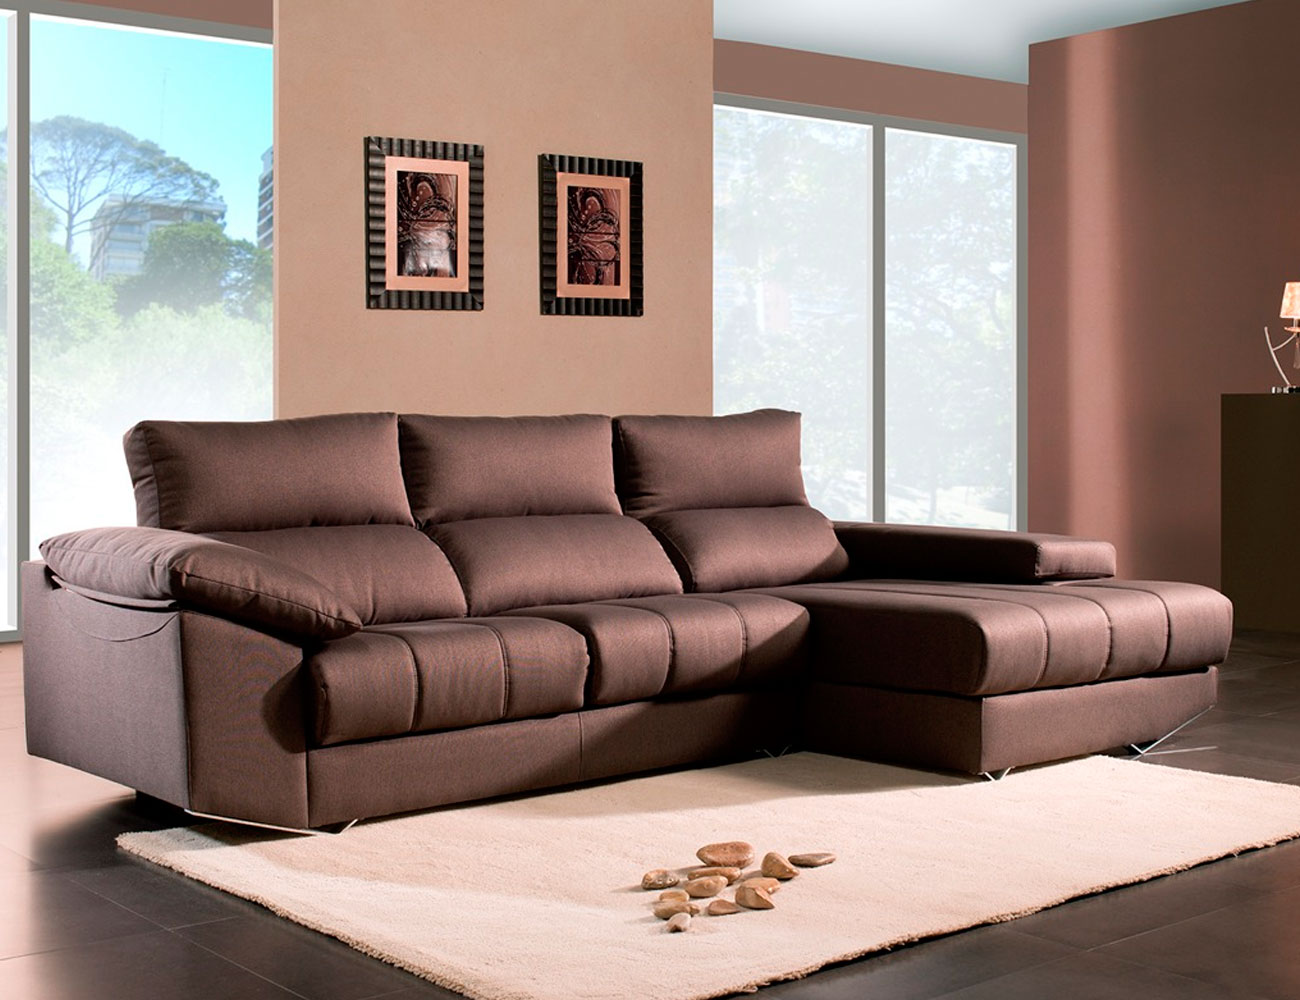 Sofa chaiselongue moderno brazo mecanico11